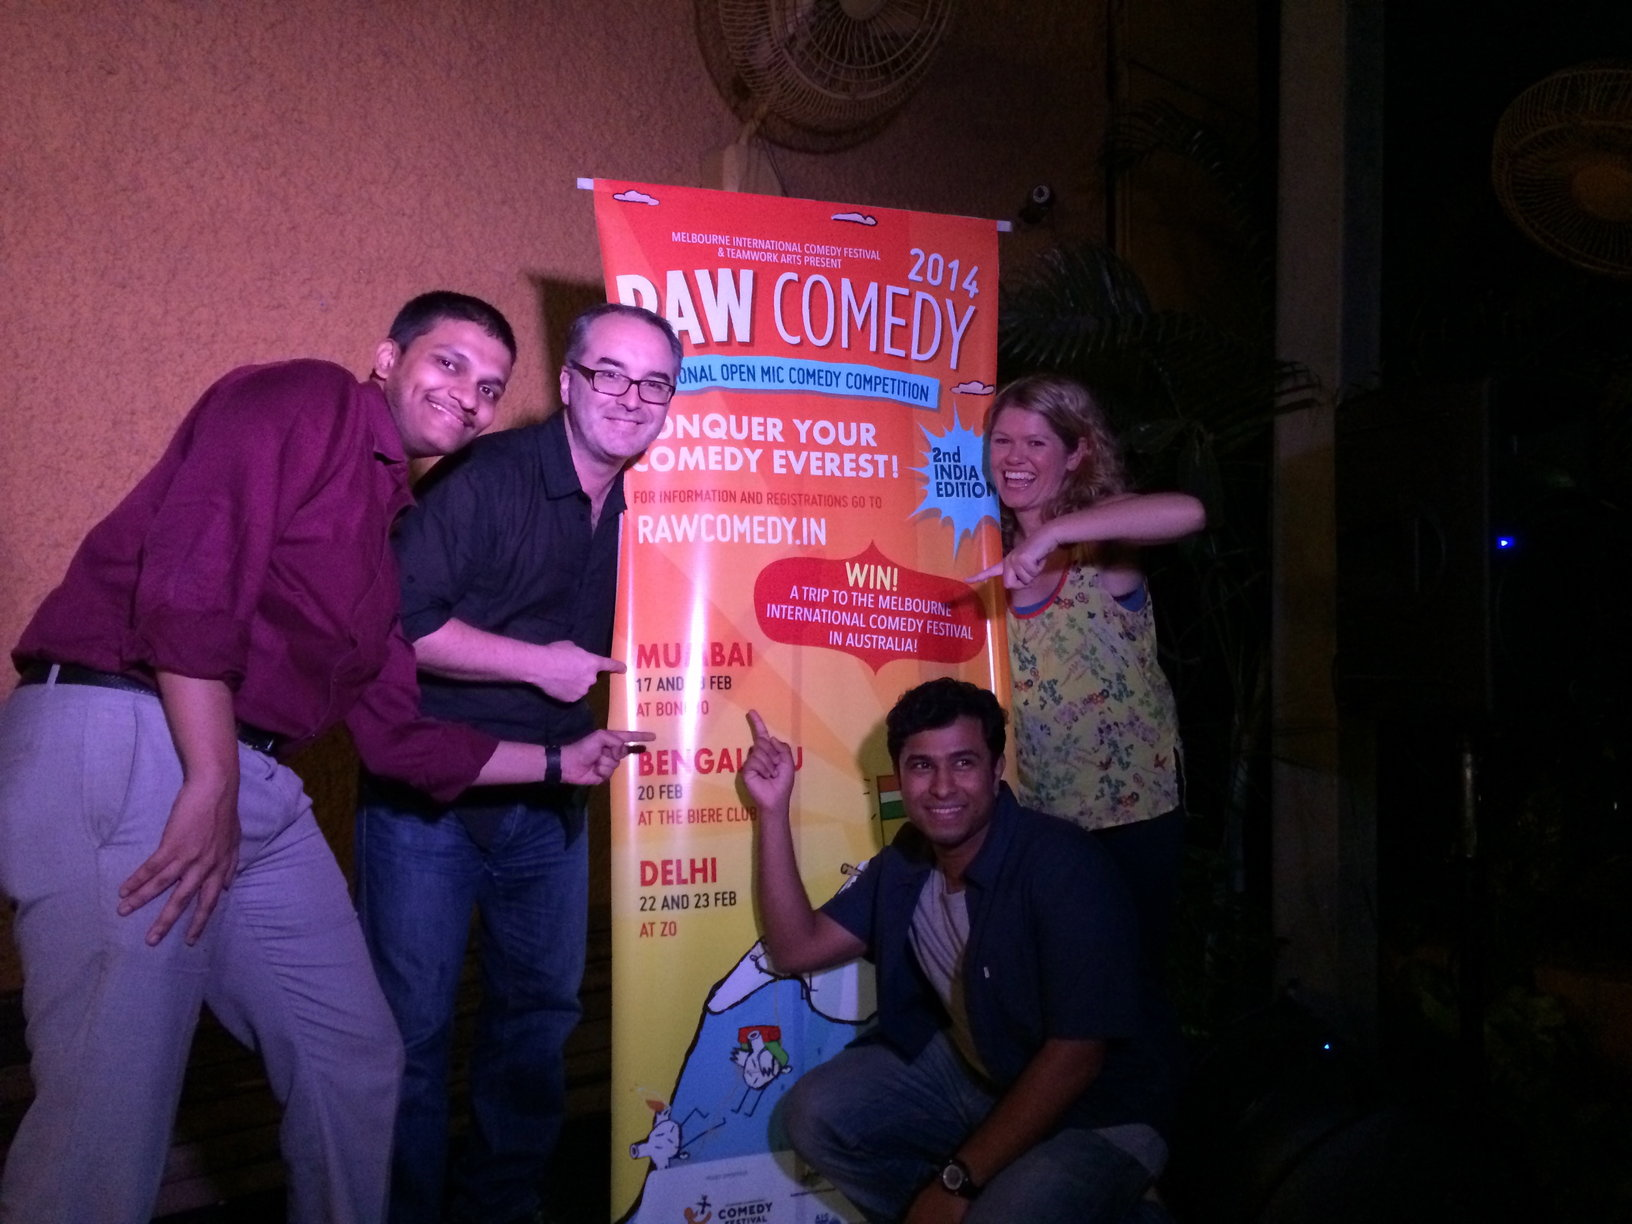 Here are Kate and I with the winners Akshay Shinde and Abish Matthew.